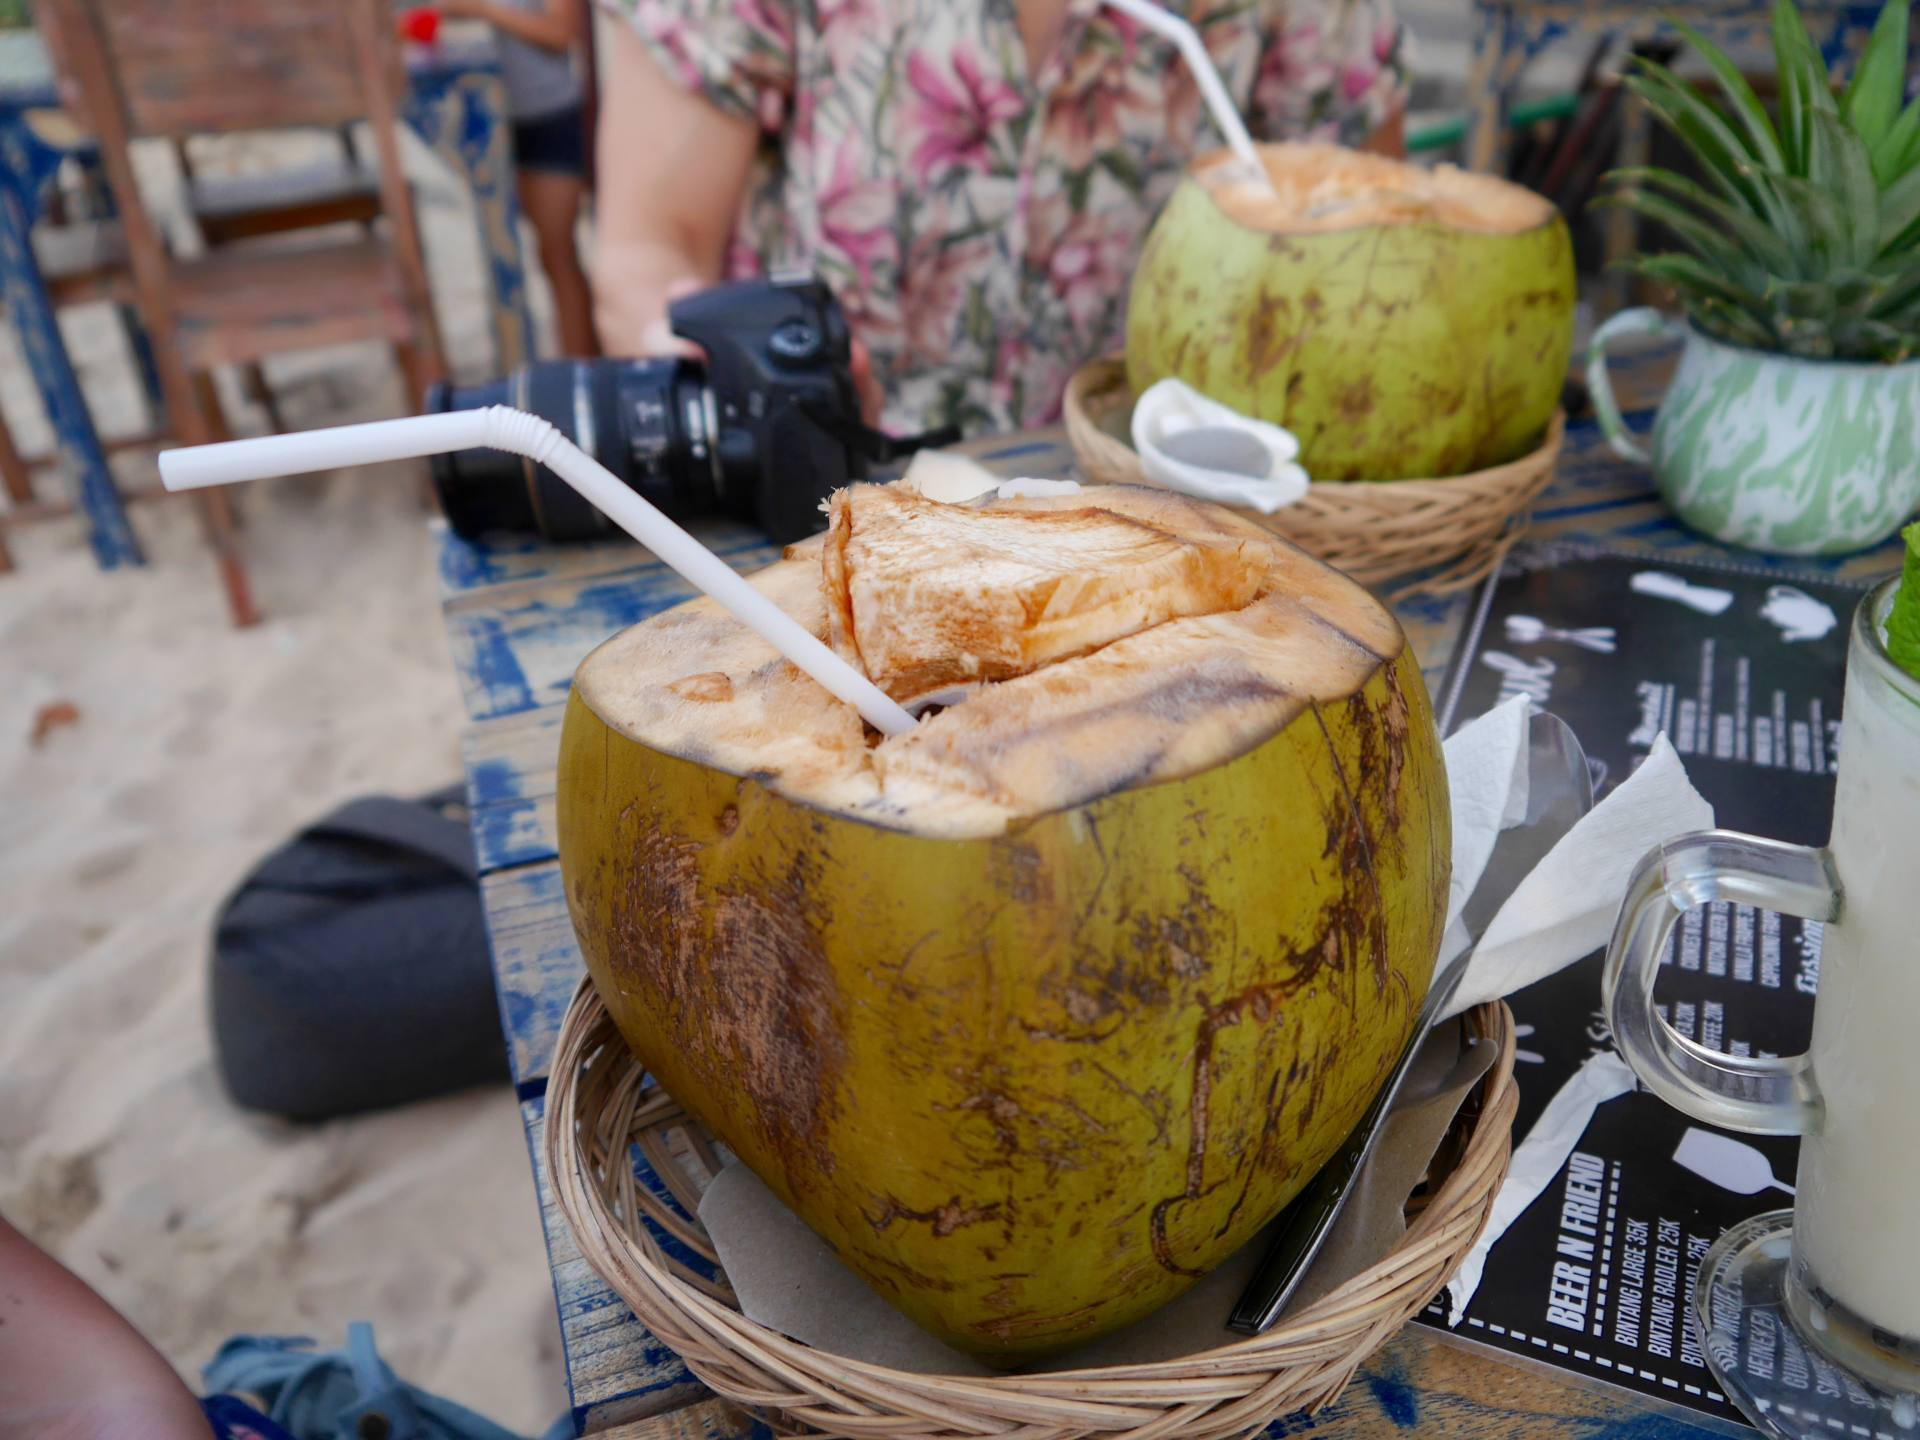 coconut with a straw in Bali